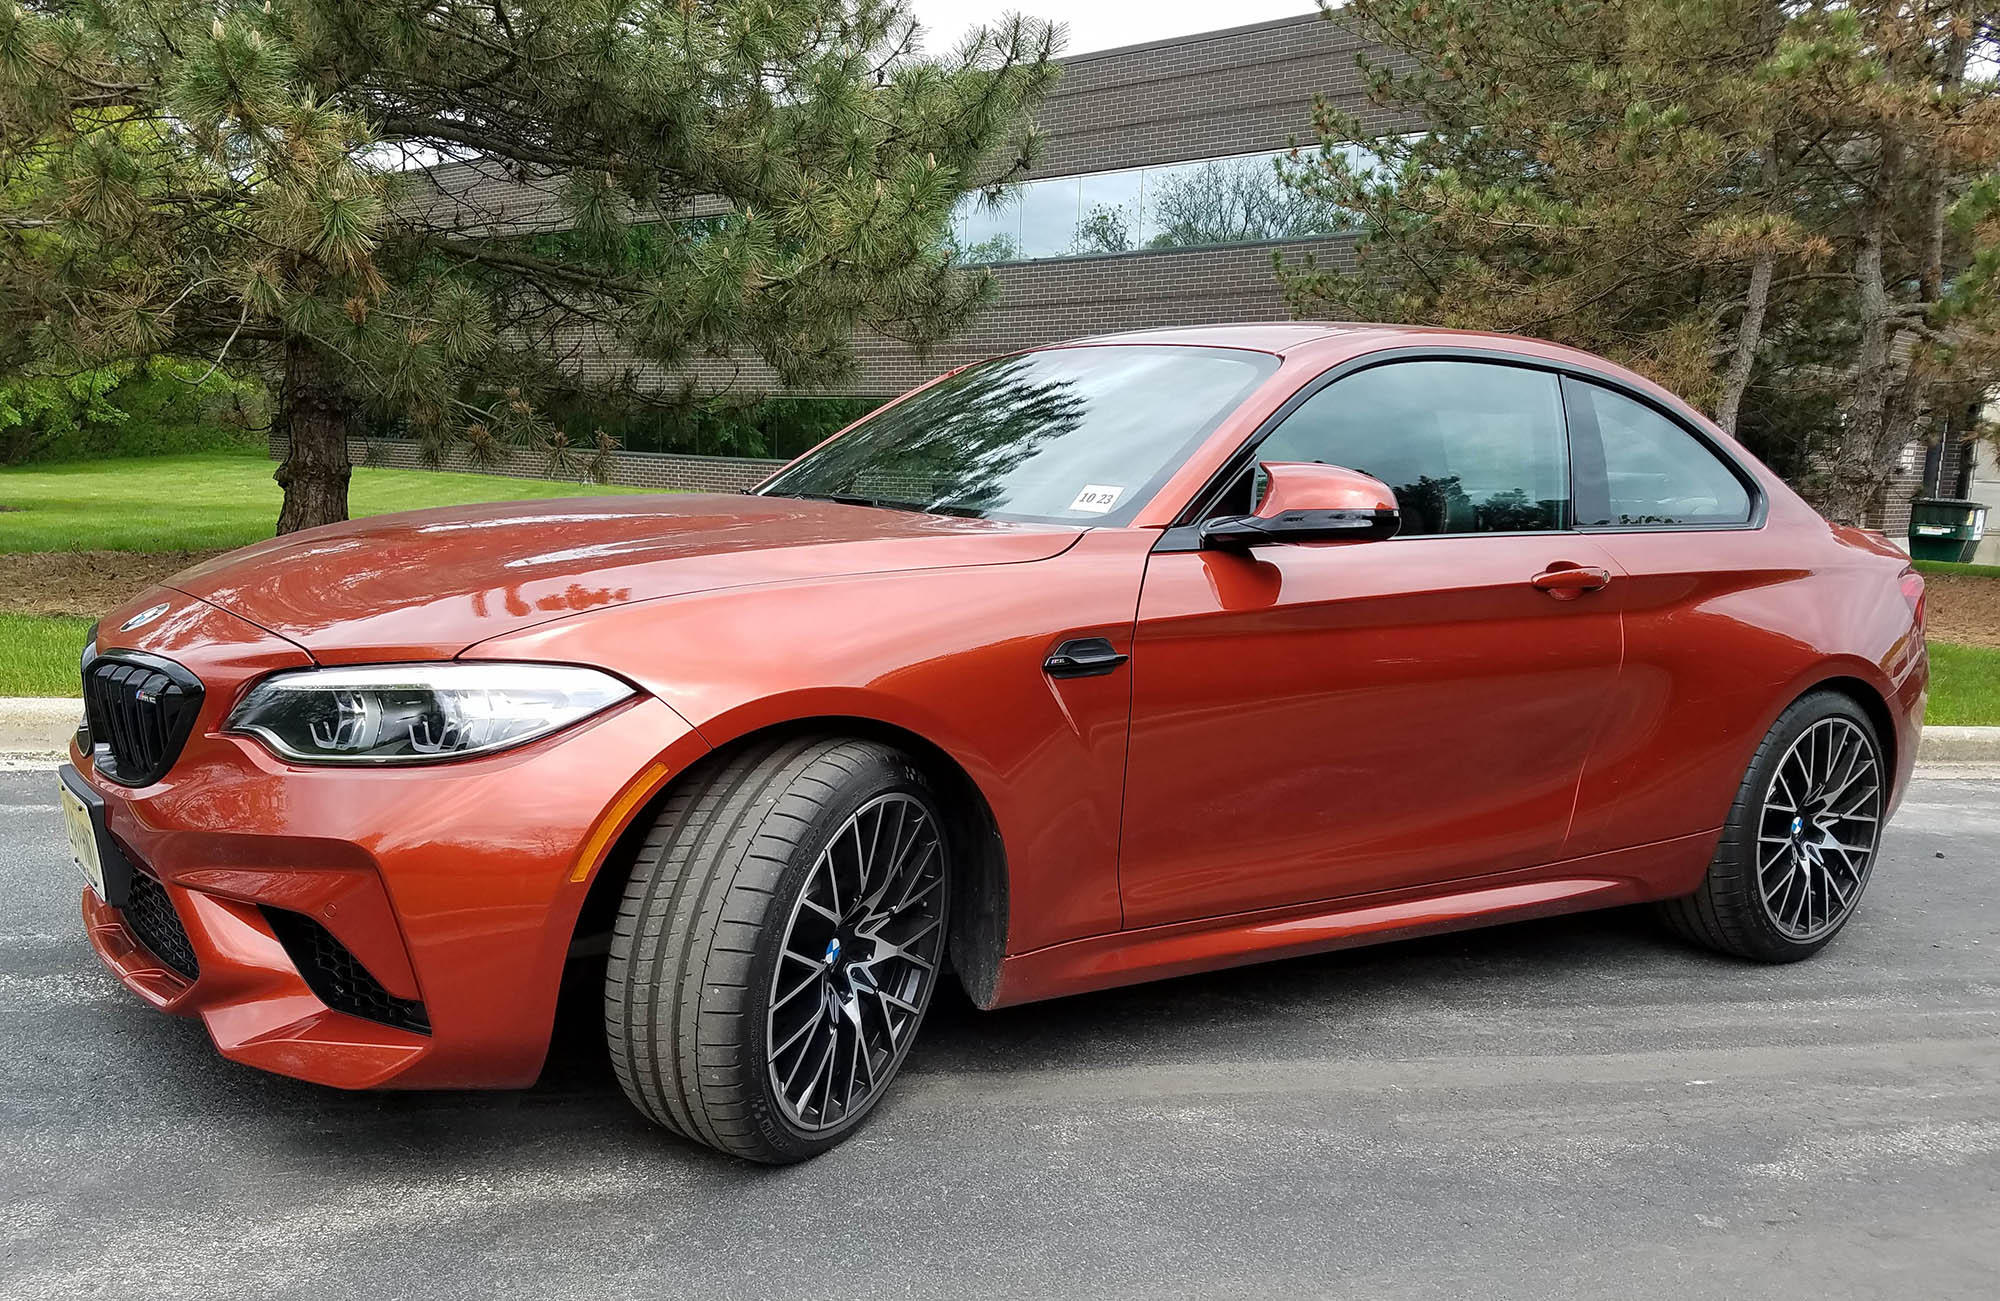 2019 Bmw M2 Competition Coupe Review Wuwm